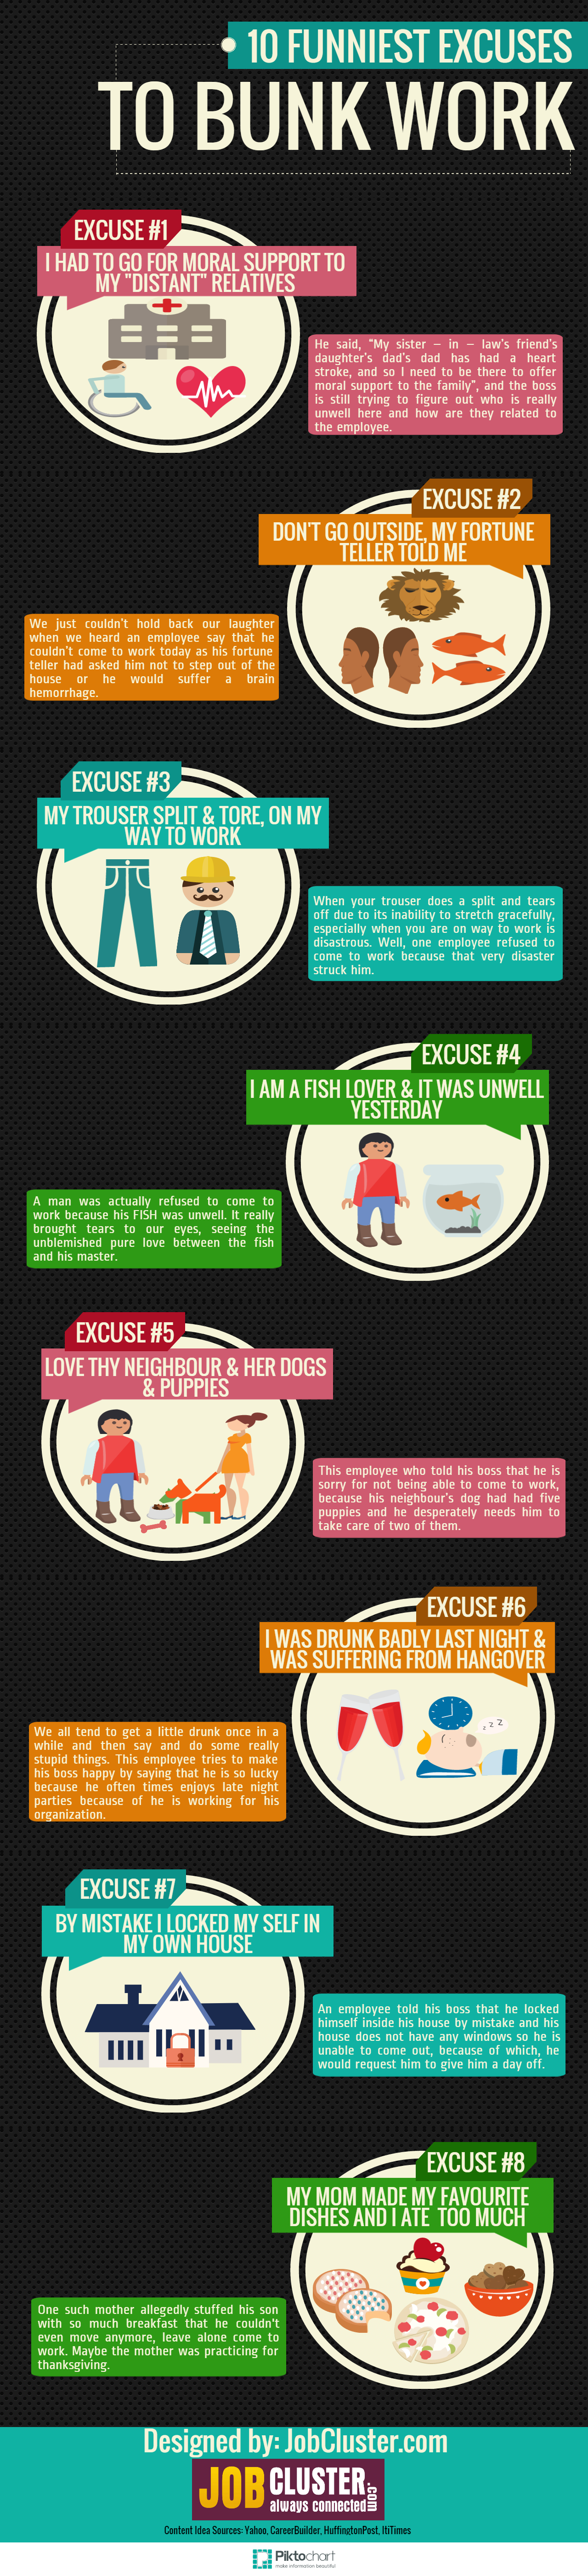 10 Funniest excuses to bunk work- infographic